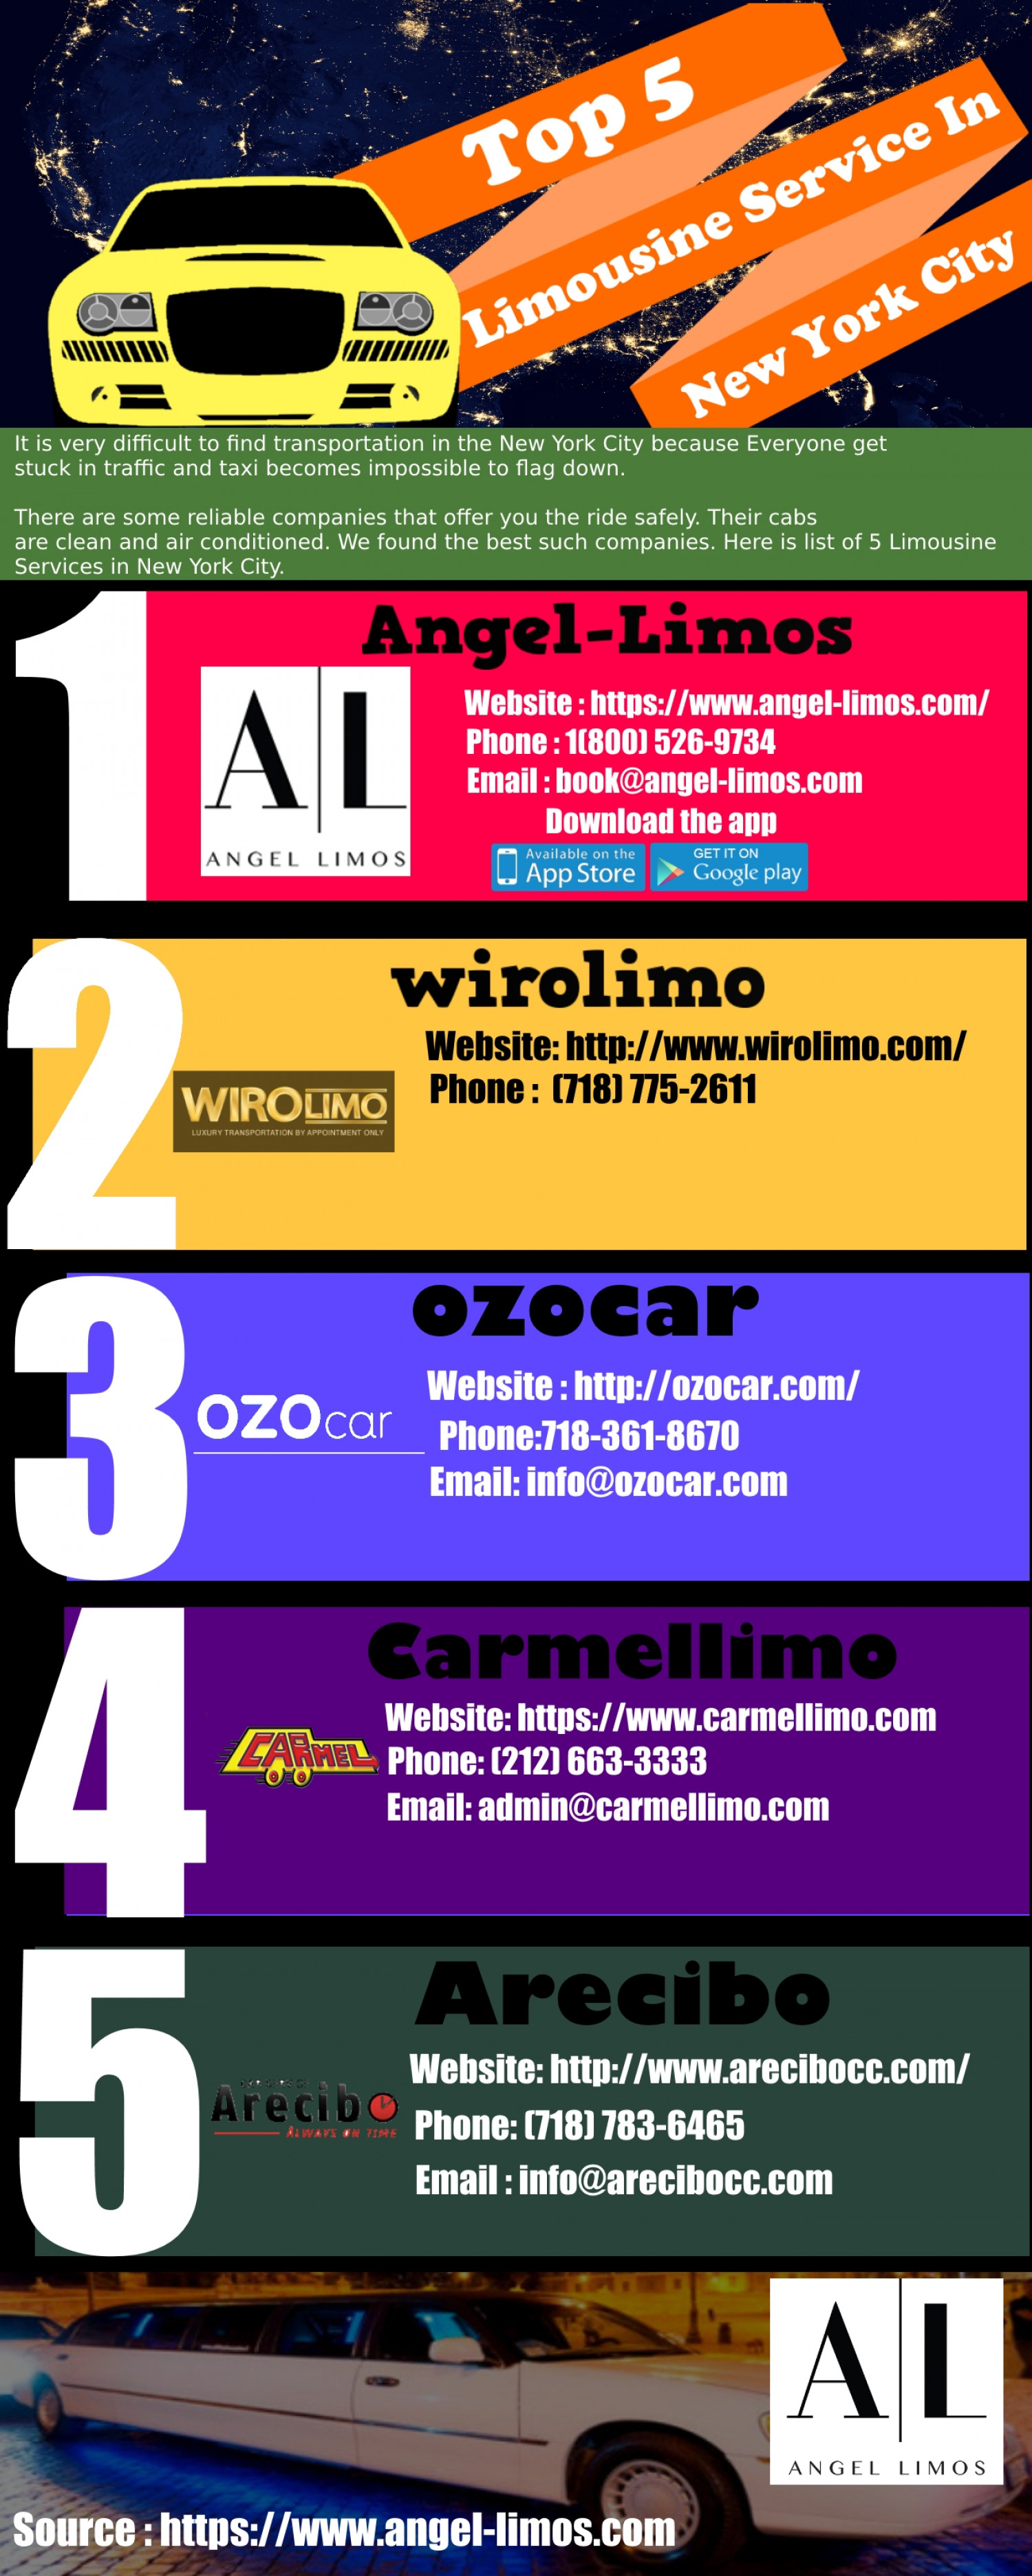 Top 5 Limousine Service in New York City Infographic